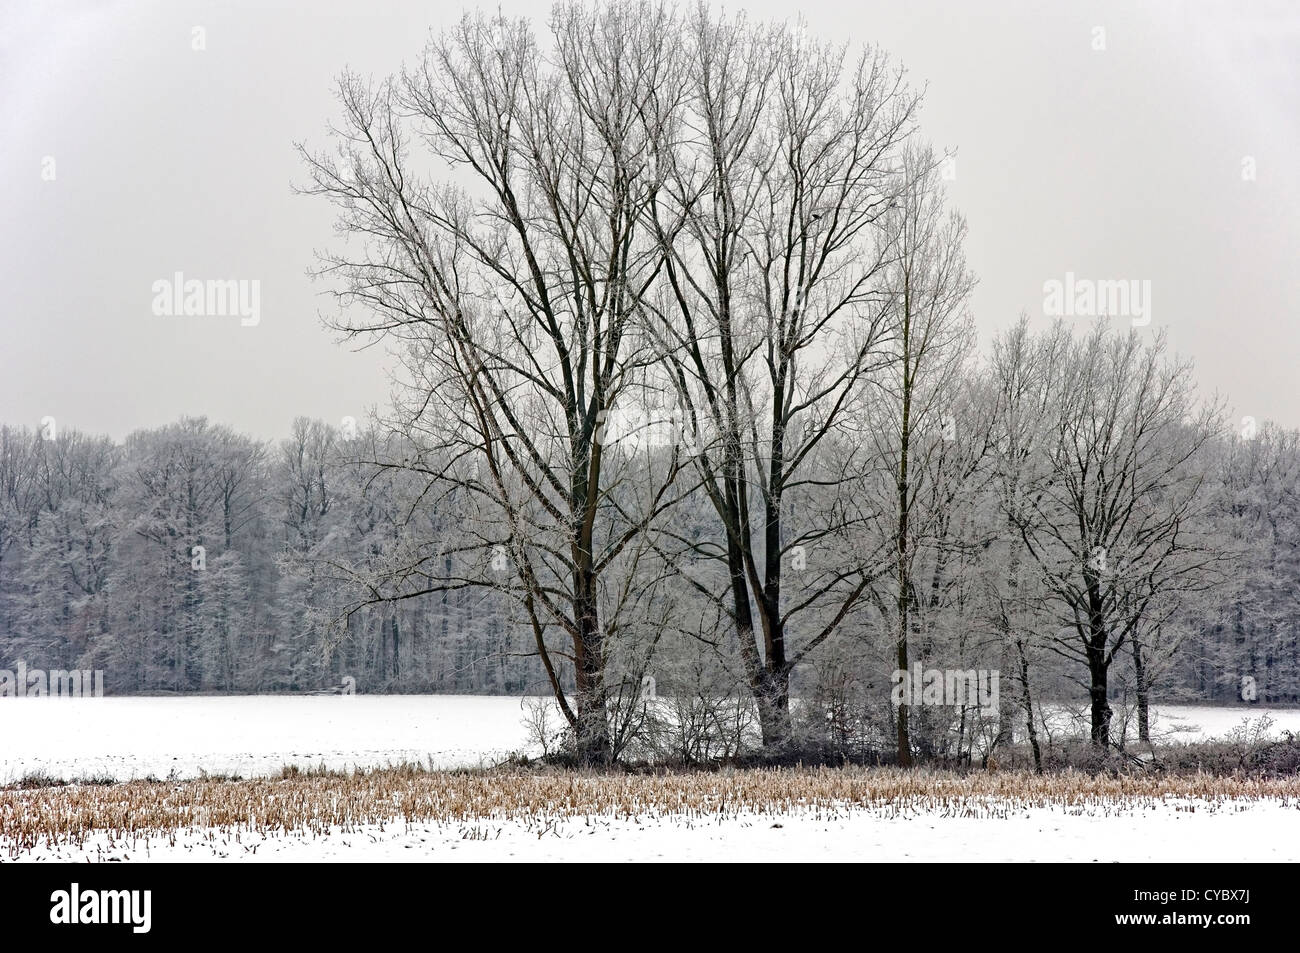 Group of trees covered with hoar frost on a snowy field in Muensterland (North Rhine-Westphalia, Germany) - Stock Image